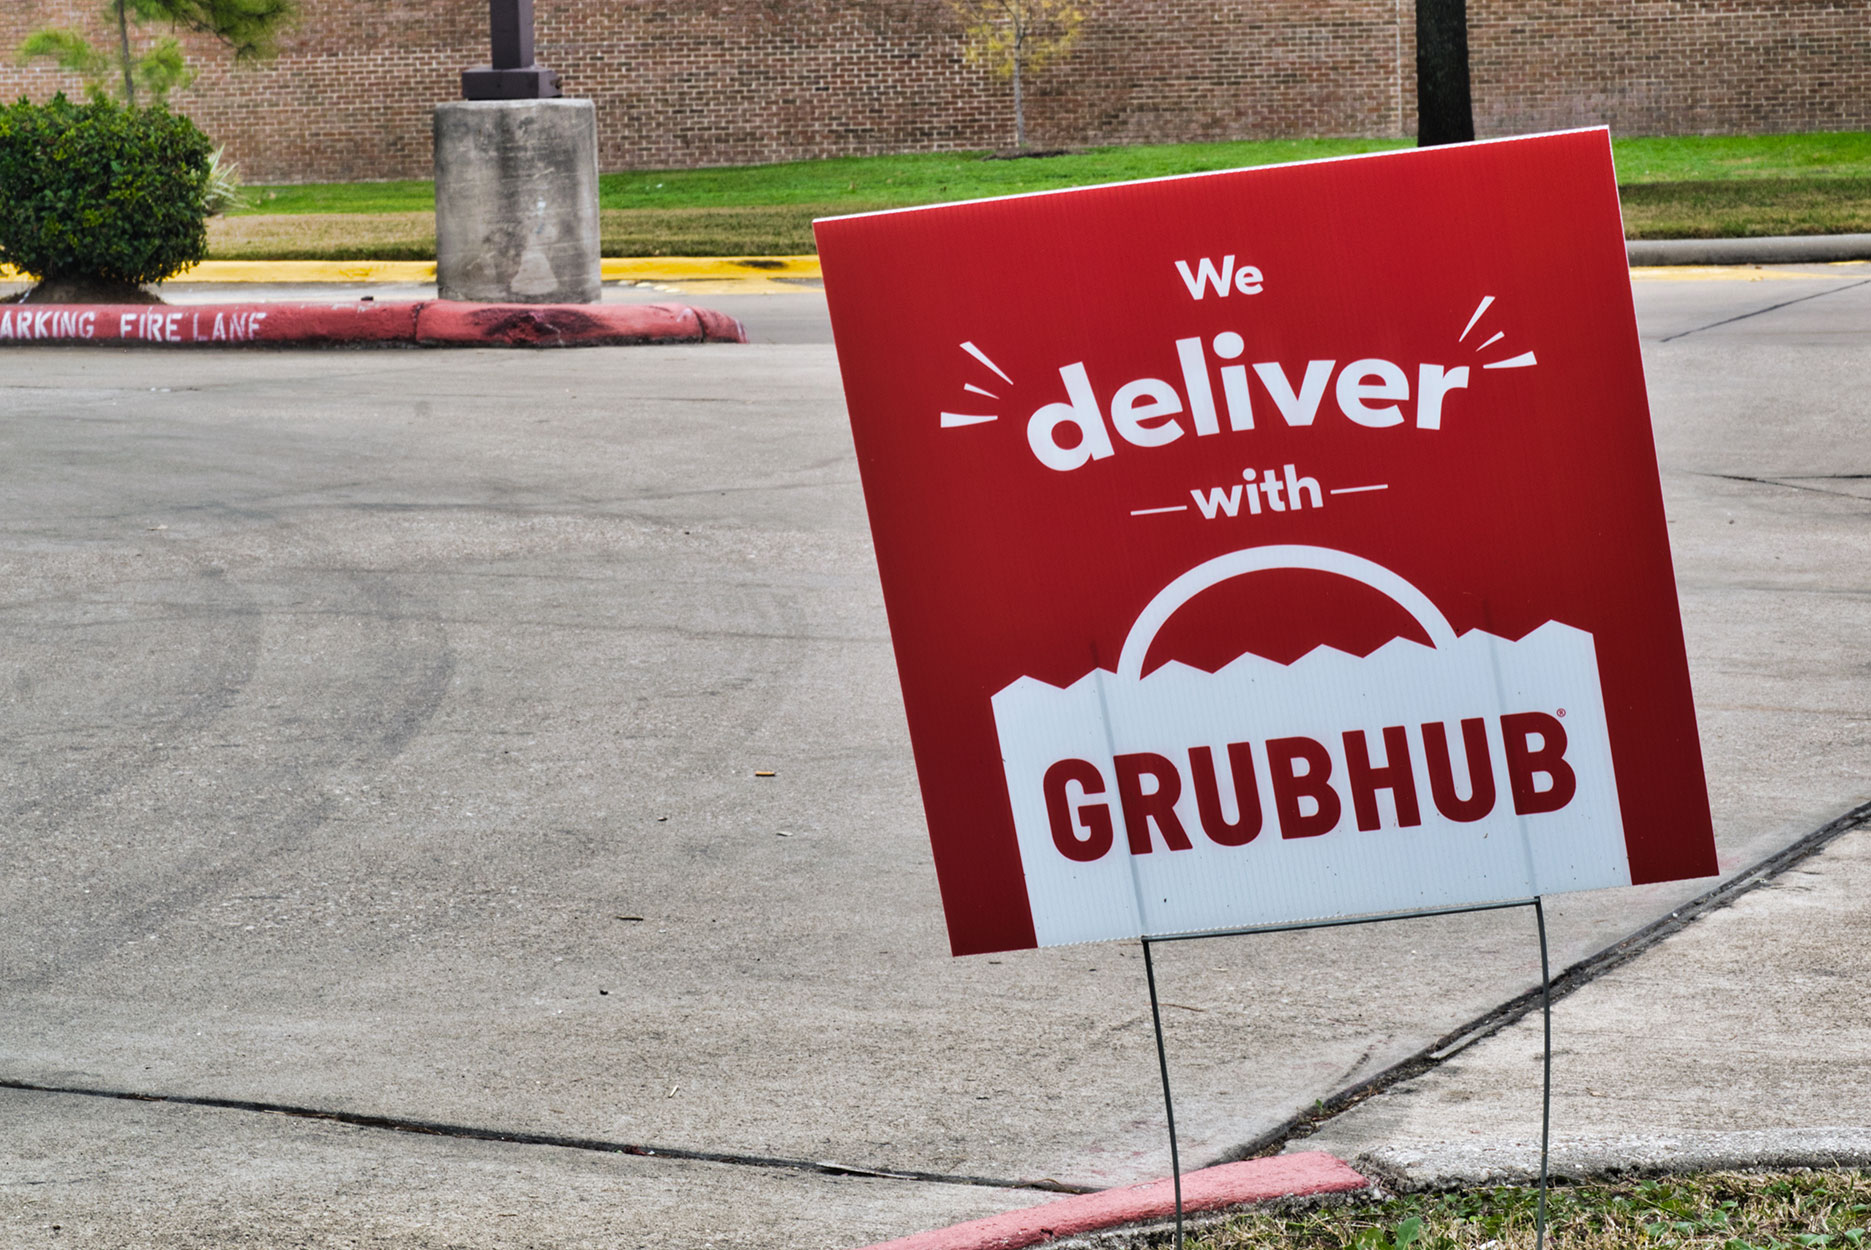 A sign for Grubhub delivery